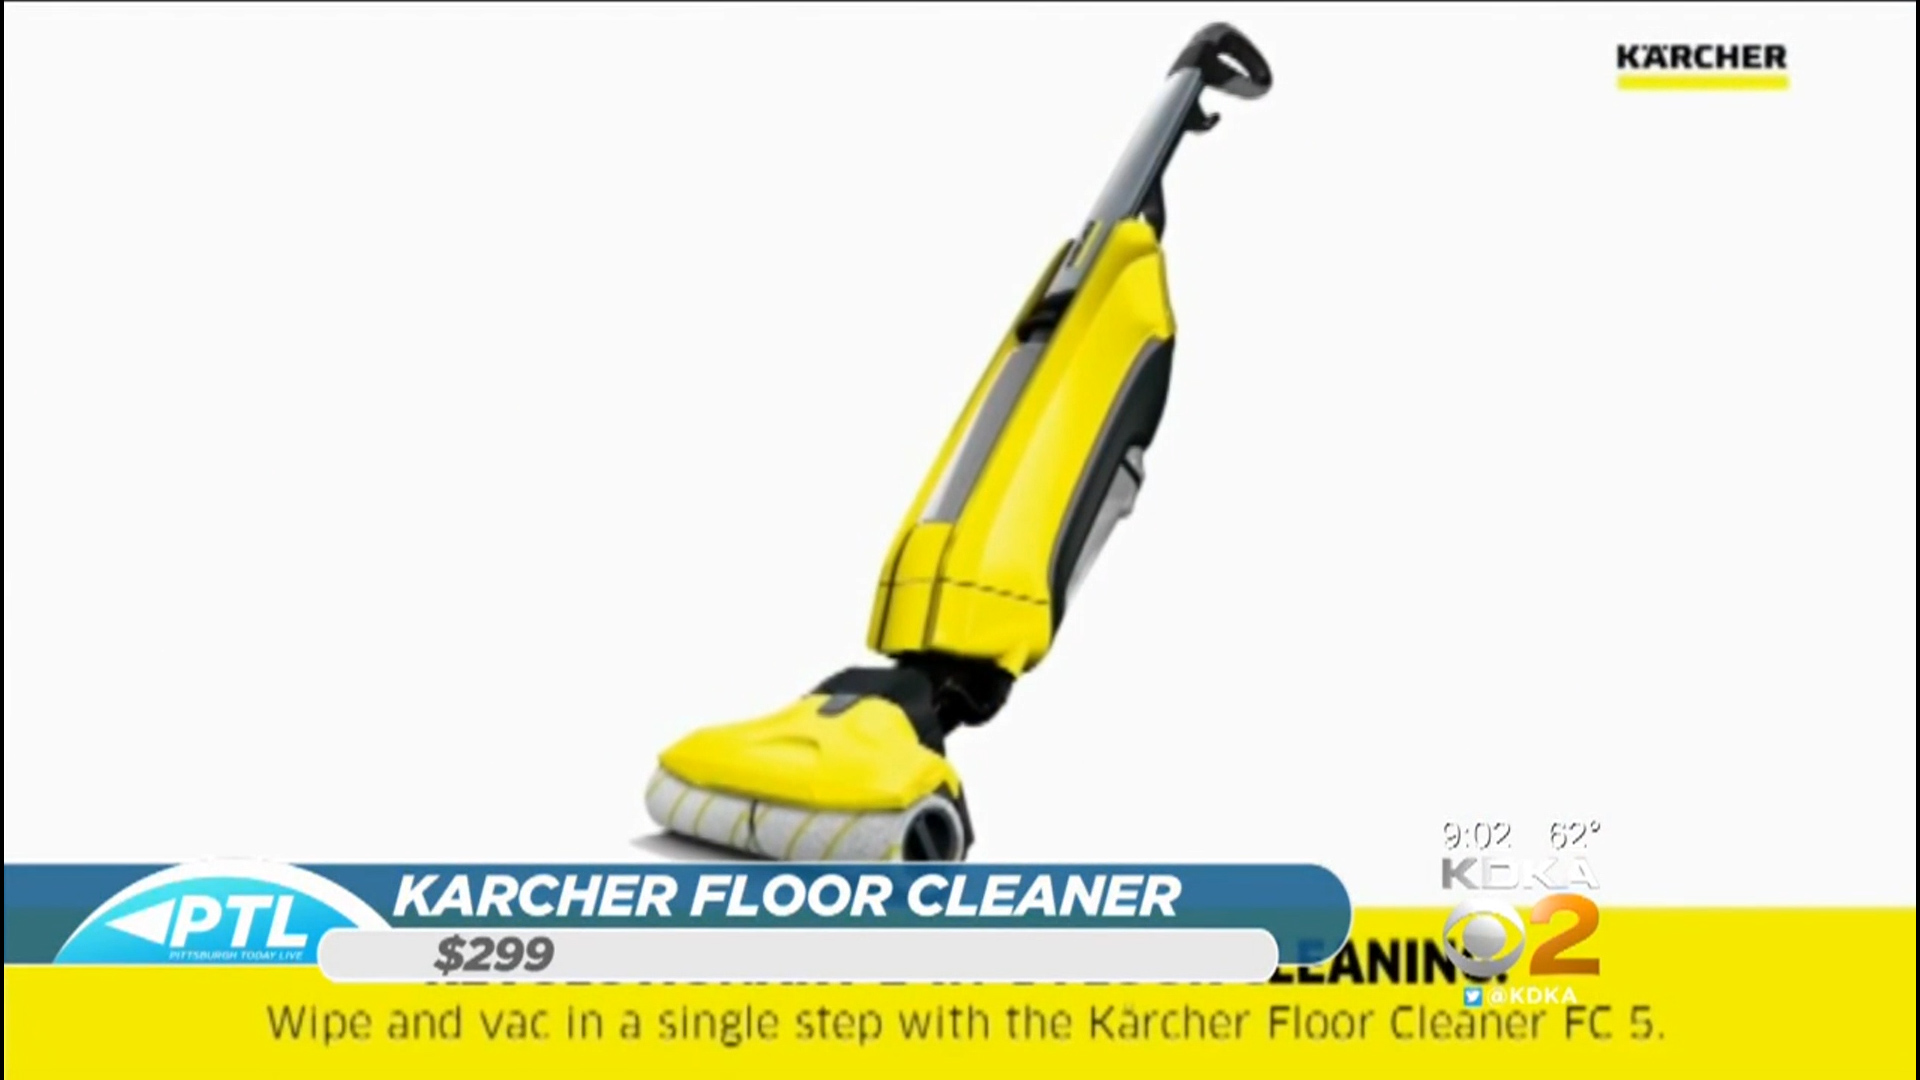 KARCHER FC5 FLOOR CLEANER - $299.99Shop Now or via Amazon